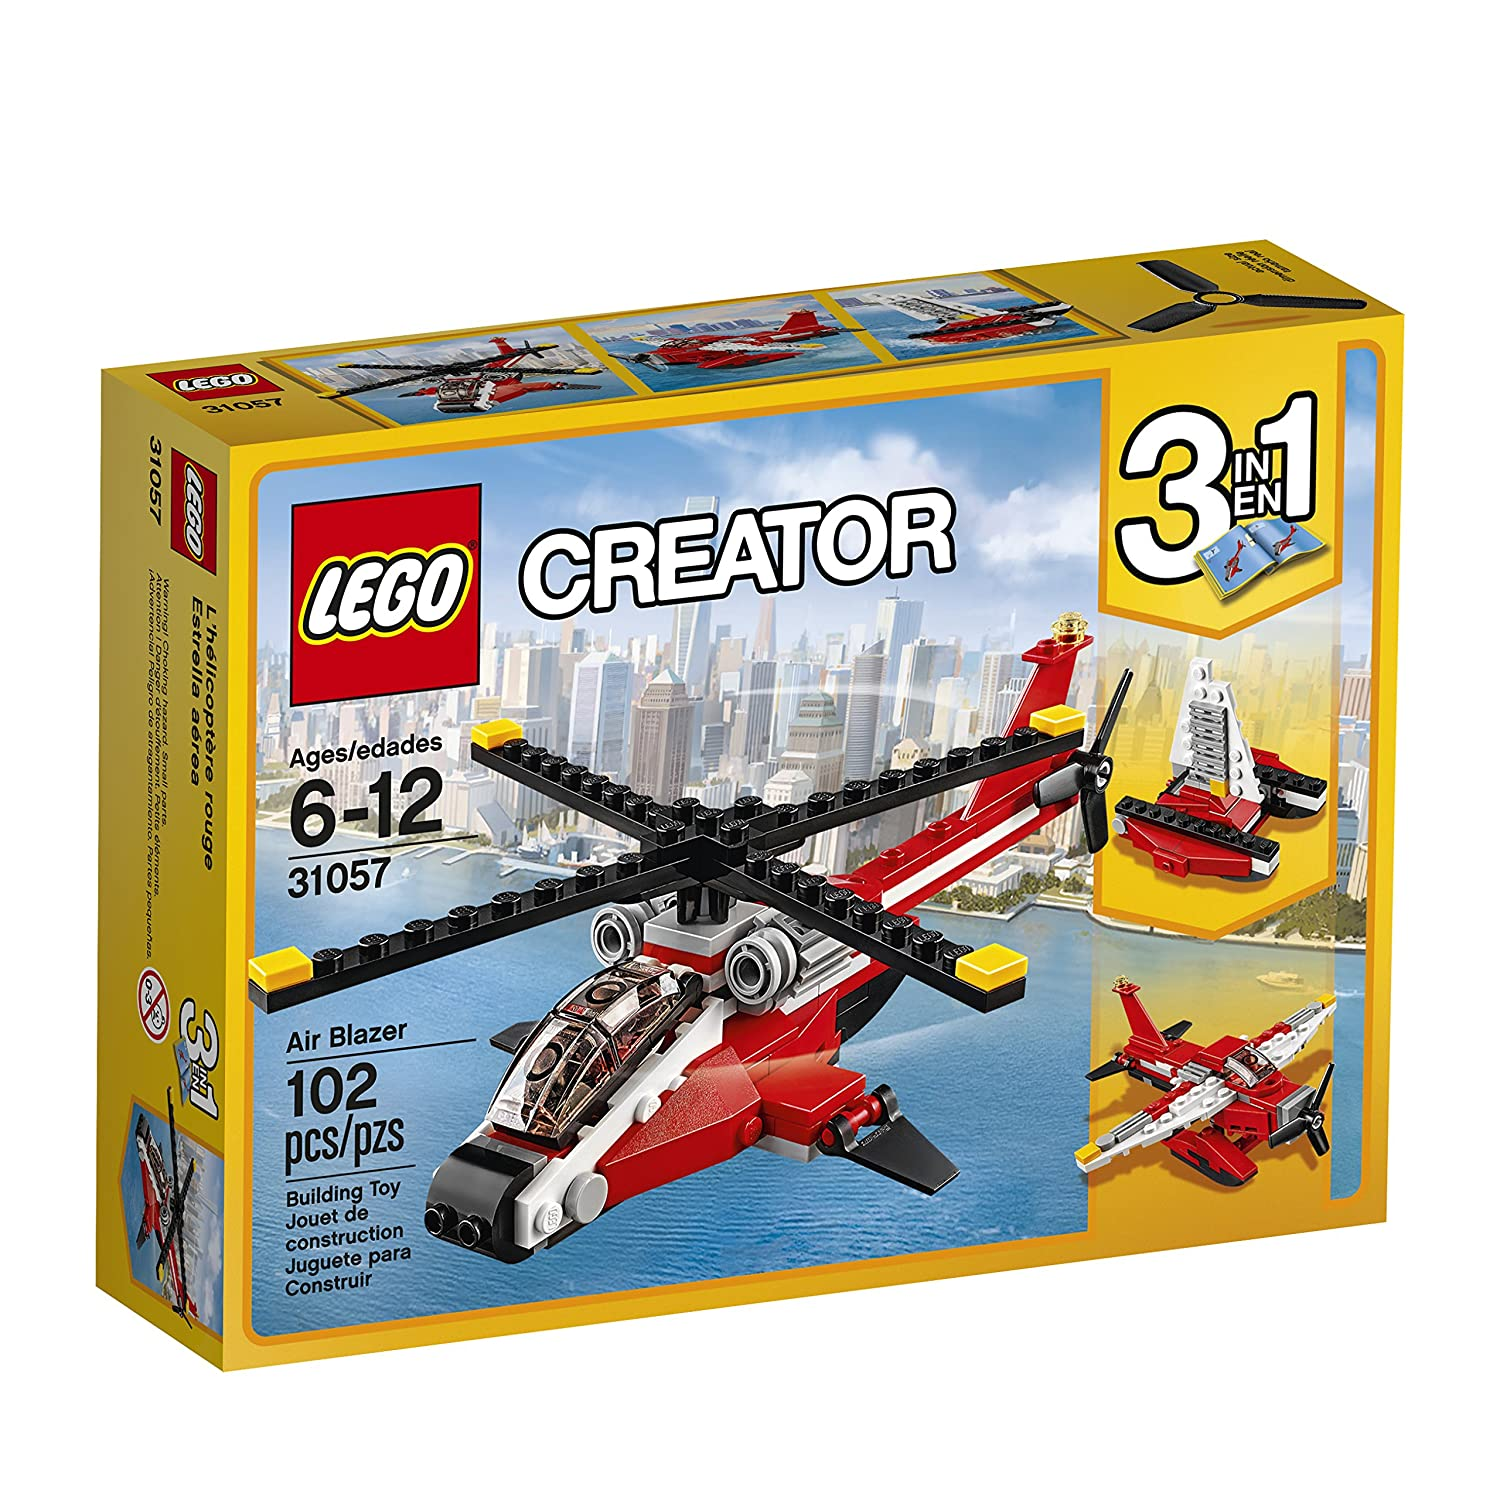 $9.67(was $12.99) LEGO 6175241 Creator Air Blazer 31057 Building Kit